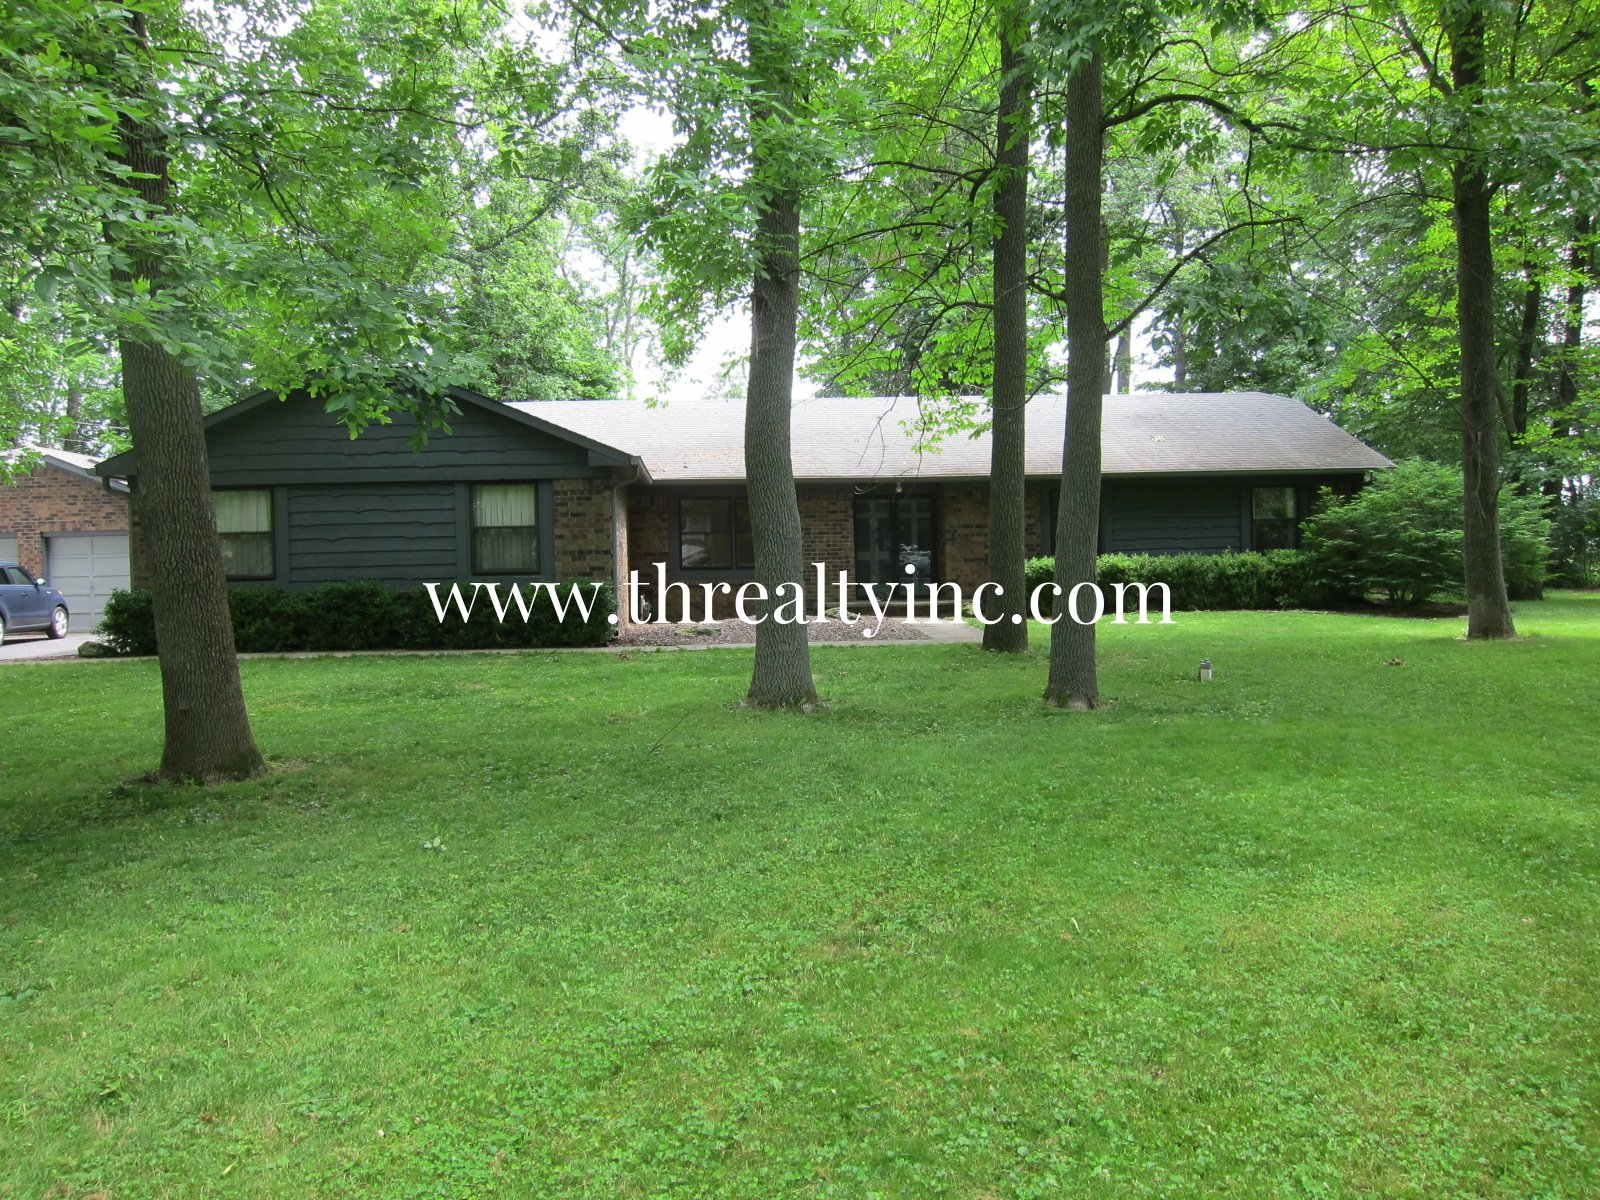 3 bed, 2 bath home in Plainfield, Indiana